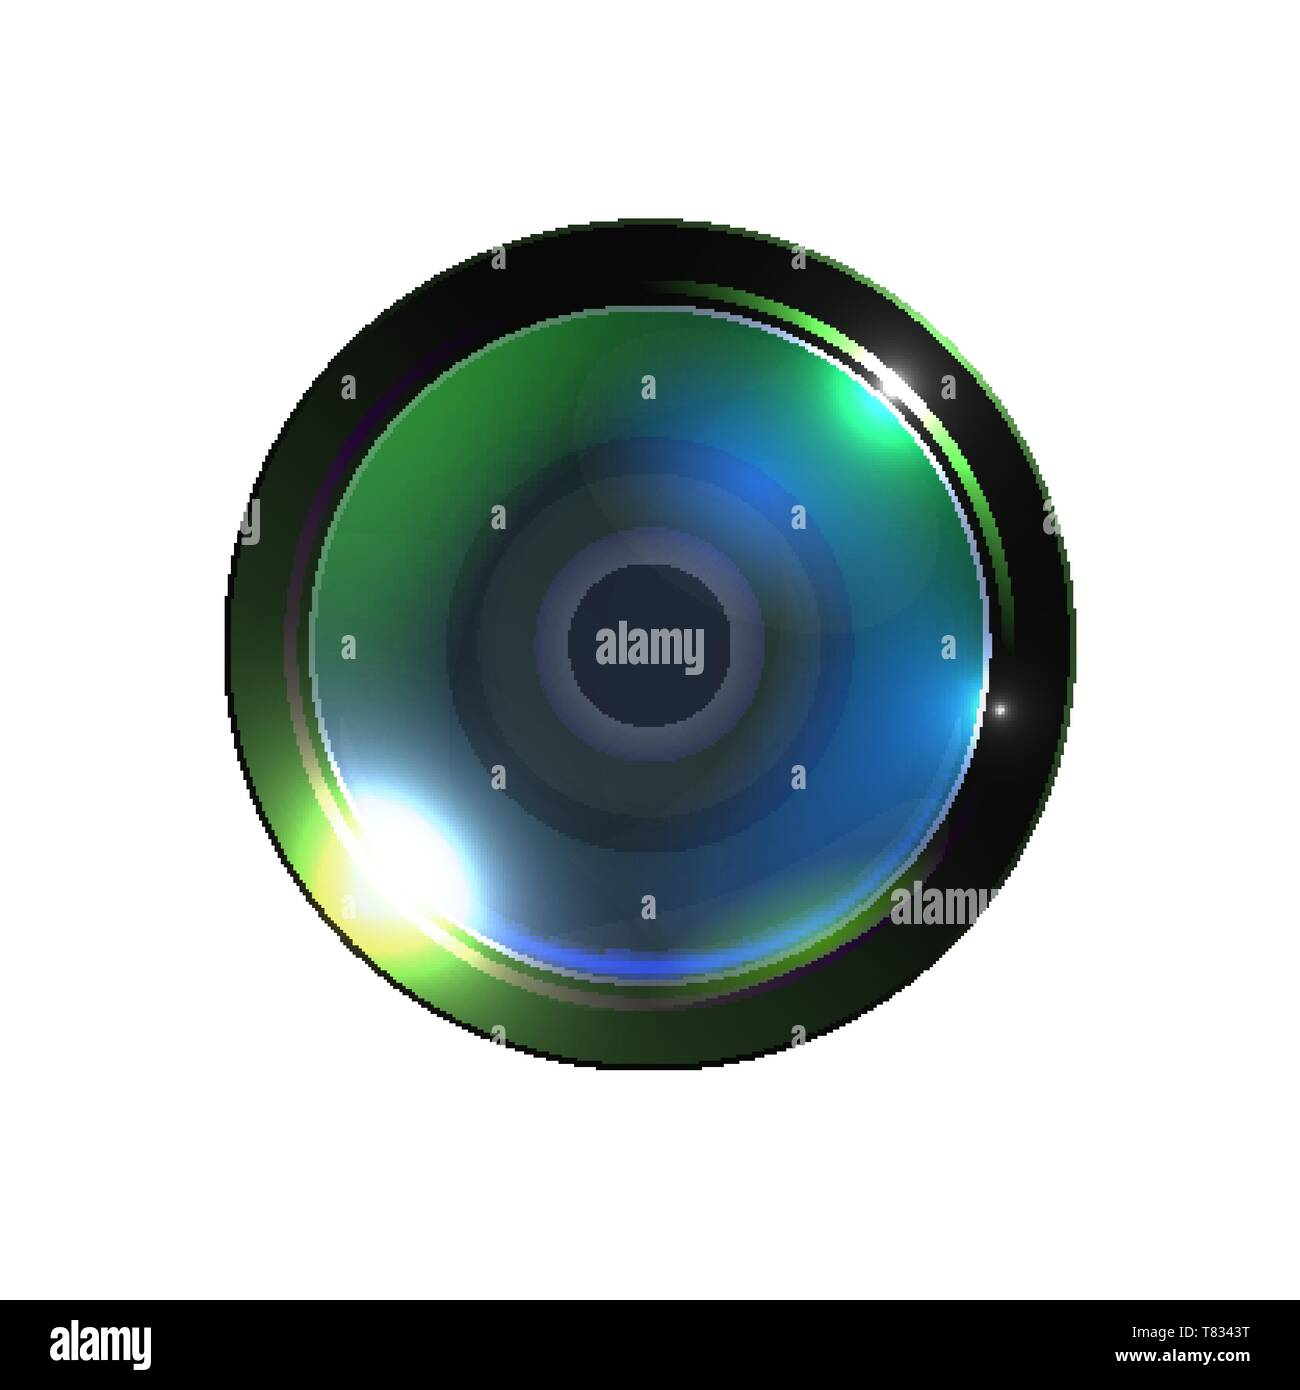 Realistic High Quality Photo Video Lens Vector. Modern Technology Optical Lens Or Assembly Of Optic Used In Conjunction With Camera Body. Green Photog - Stock Image